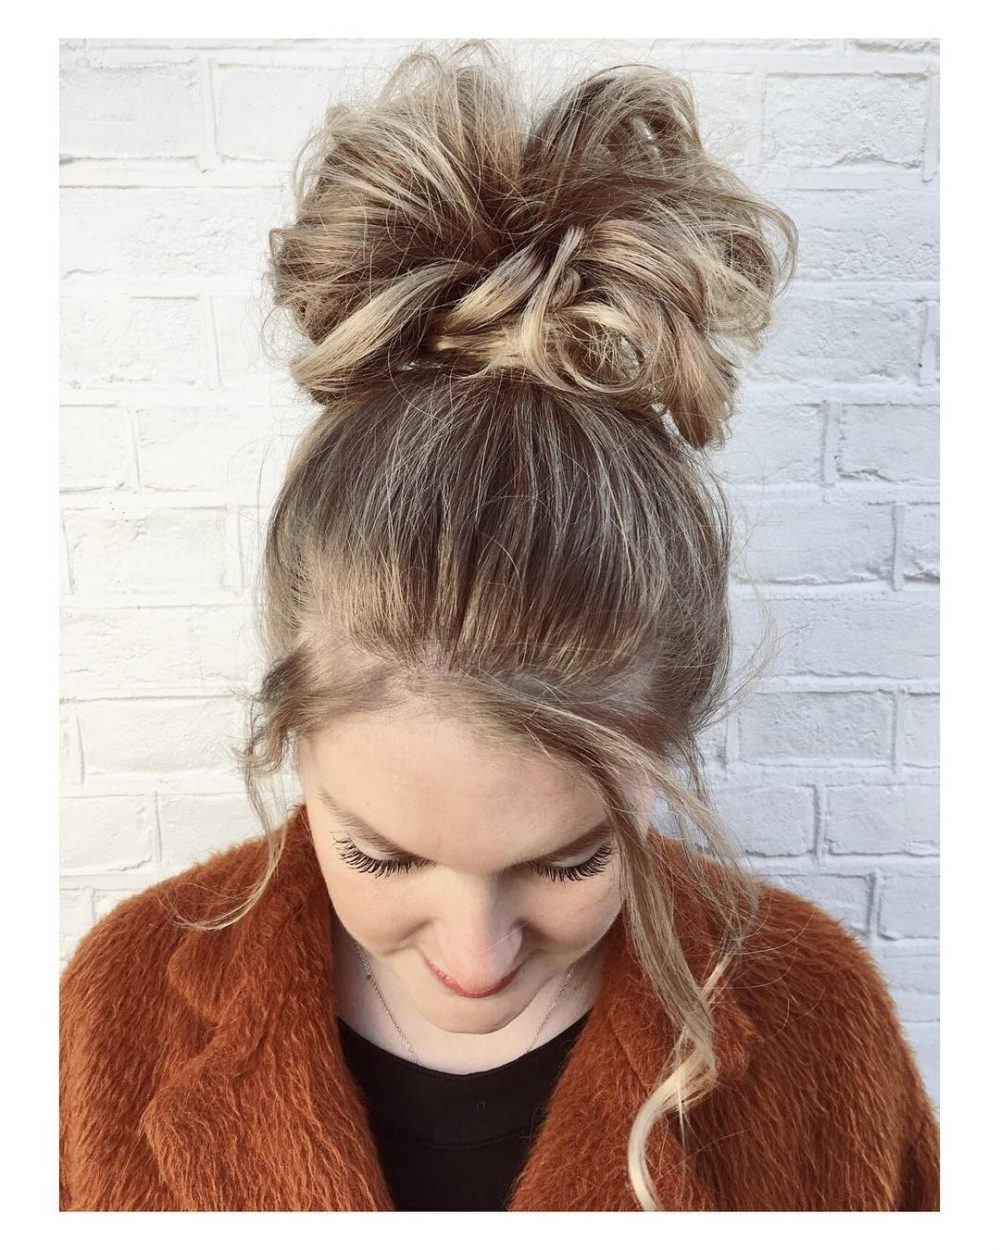 34 Easy Updos For Long Hair Trending For 2018 Pertaining To Hair Updo Hairstyles For Long Hair (View 2 of 15)